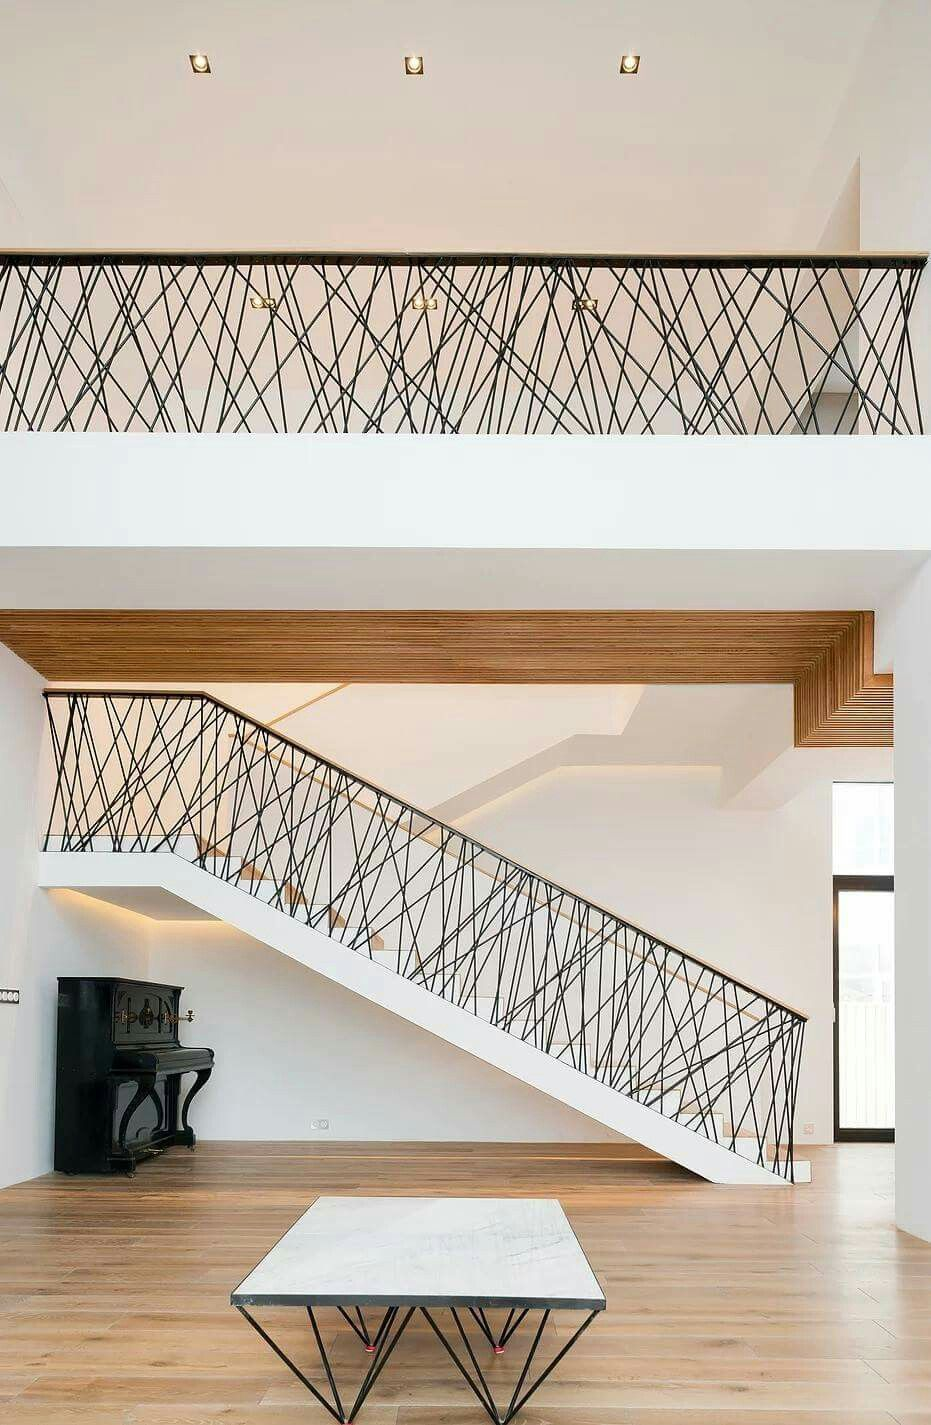 Banister in 2020 | Contemporary stairs, Interior stair ...